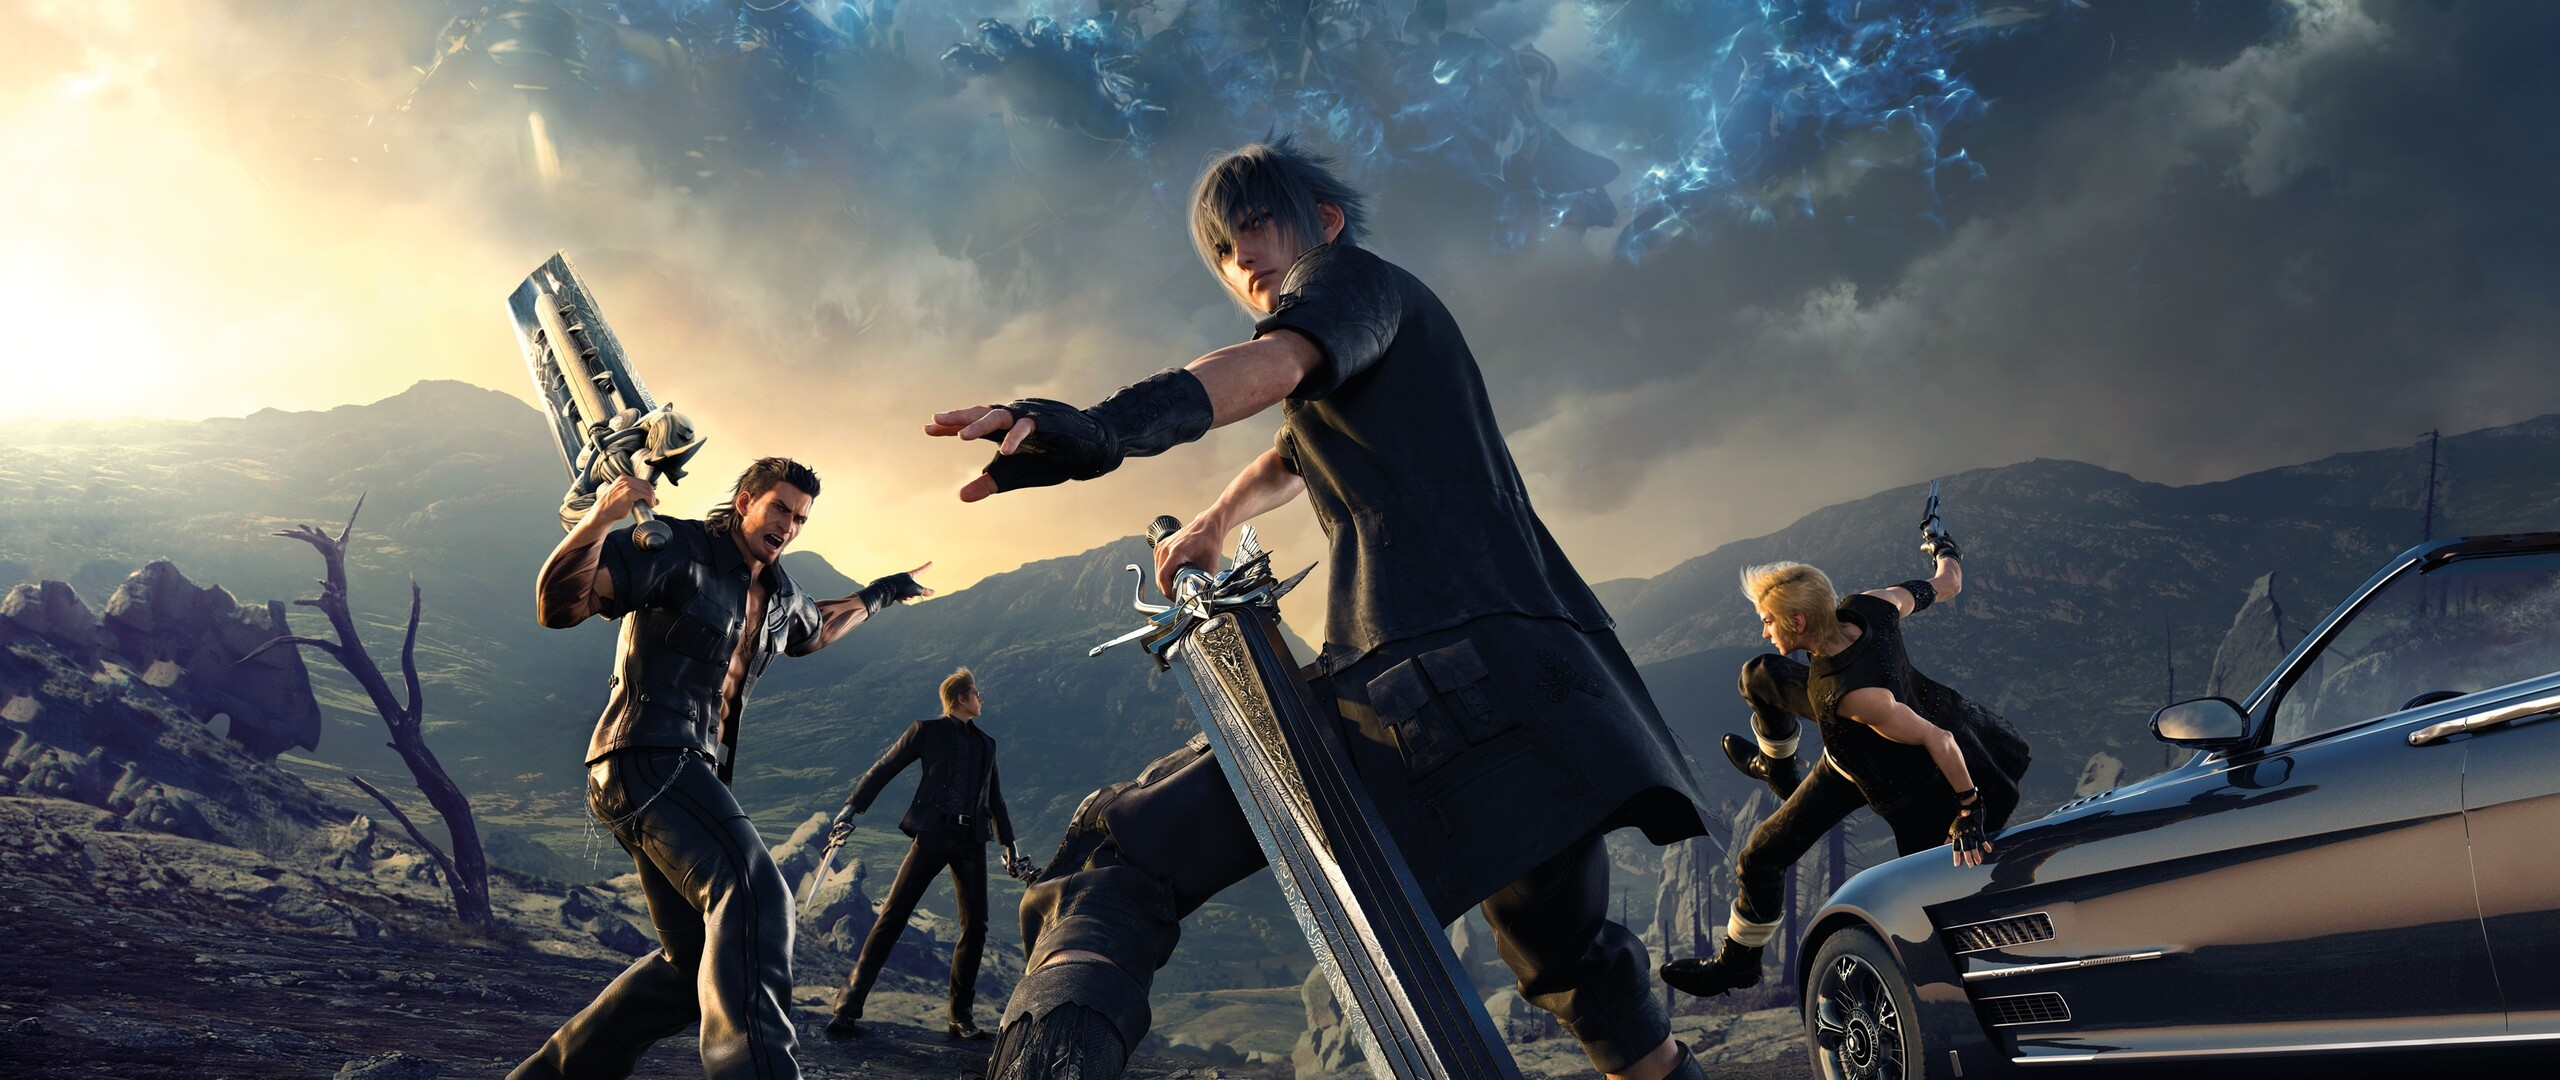 117 Final Fantasy Xv Hd Wallpapers: 2560x1080 Final Fantasy XV PS4 2560x1080 Resolution HD 4k